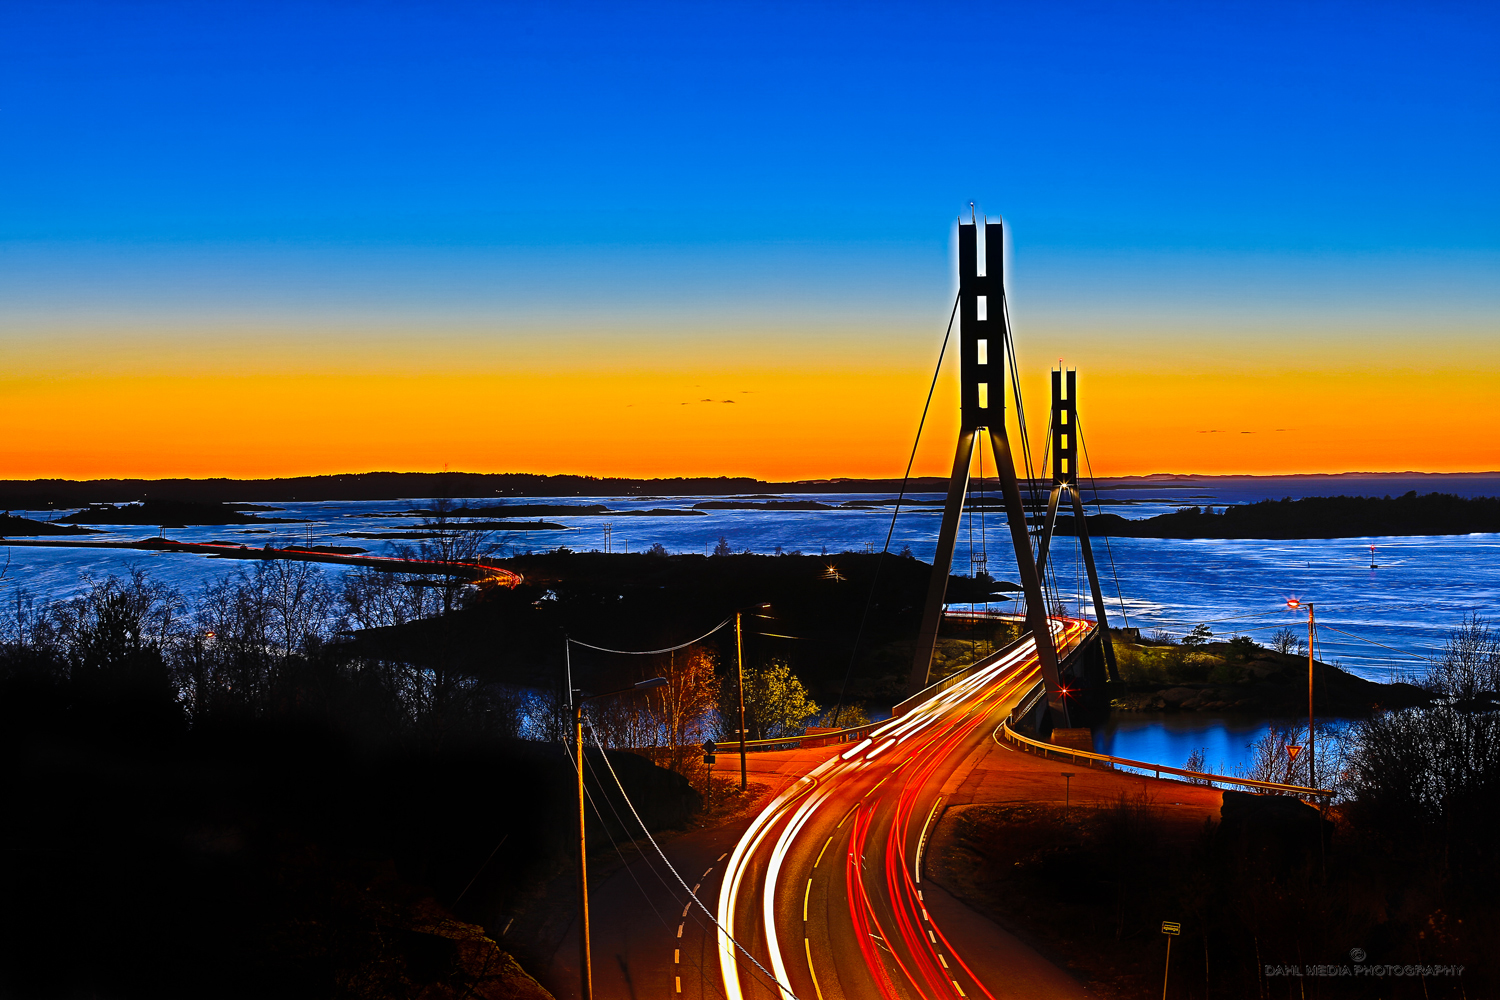 Nightscapes-COPYRIGHTED-foto-Eirik-Dahl-Hvaler-©.jpg